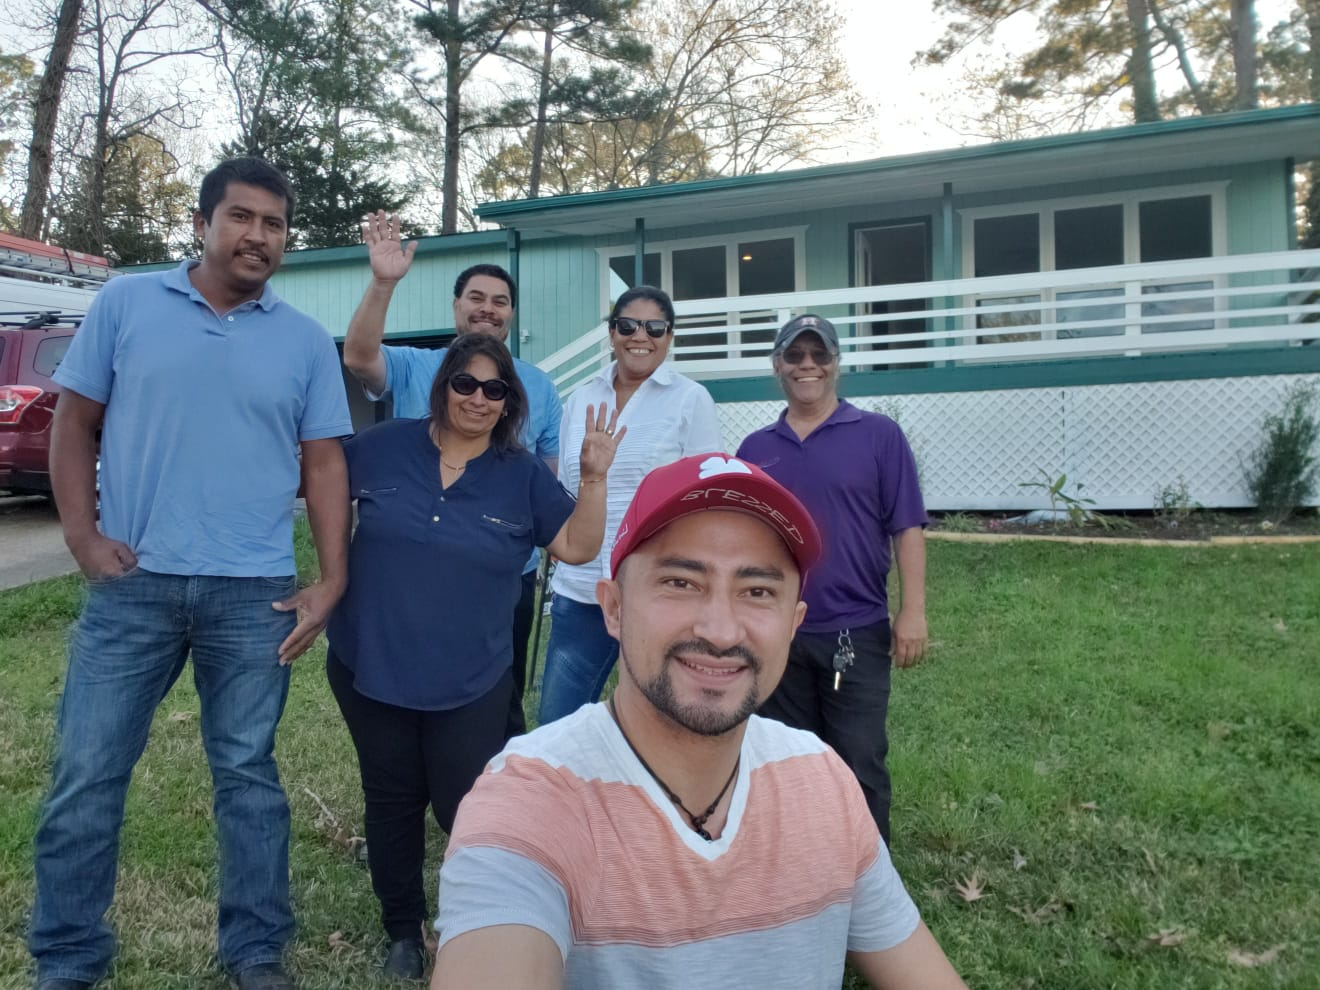 Latinos in real estate